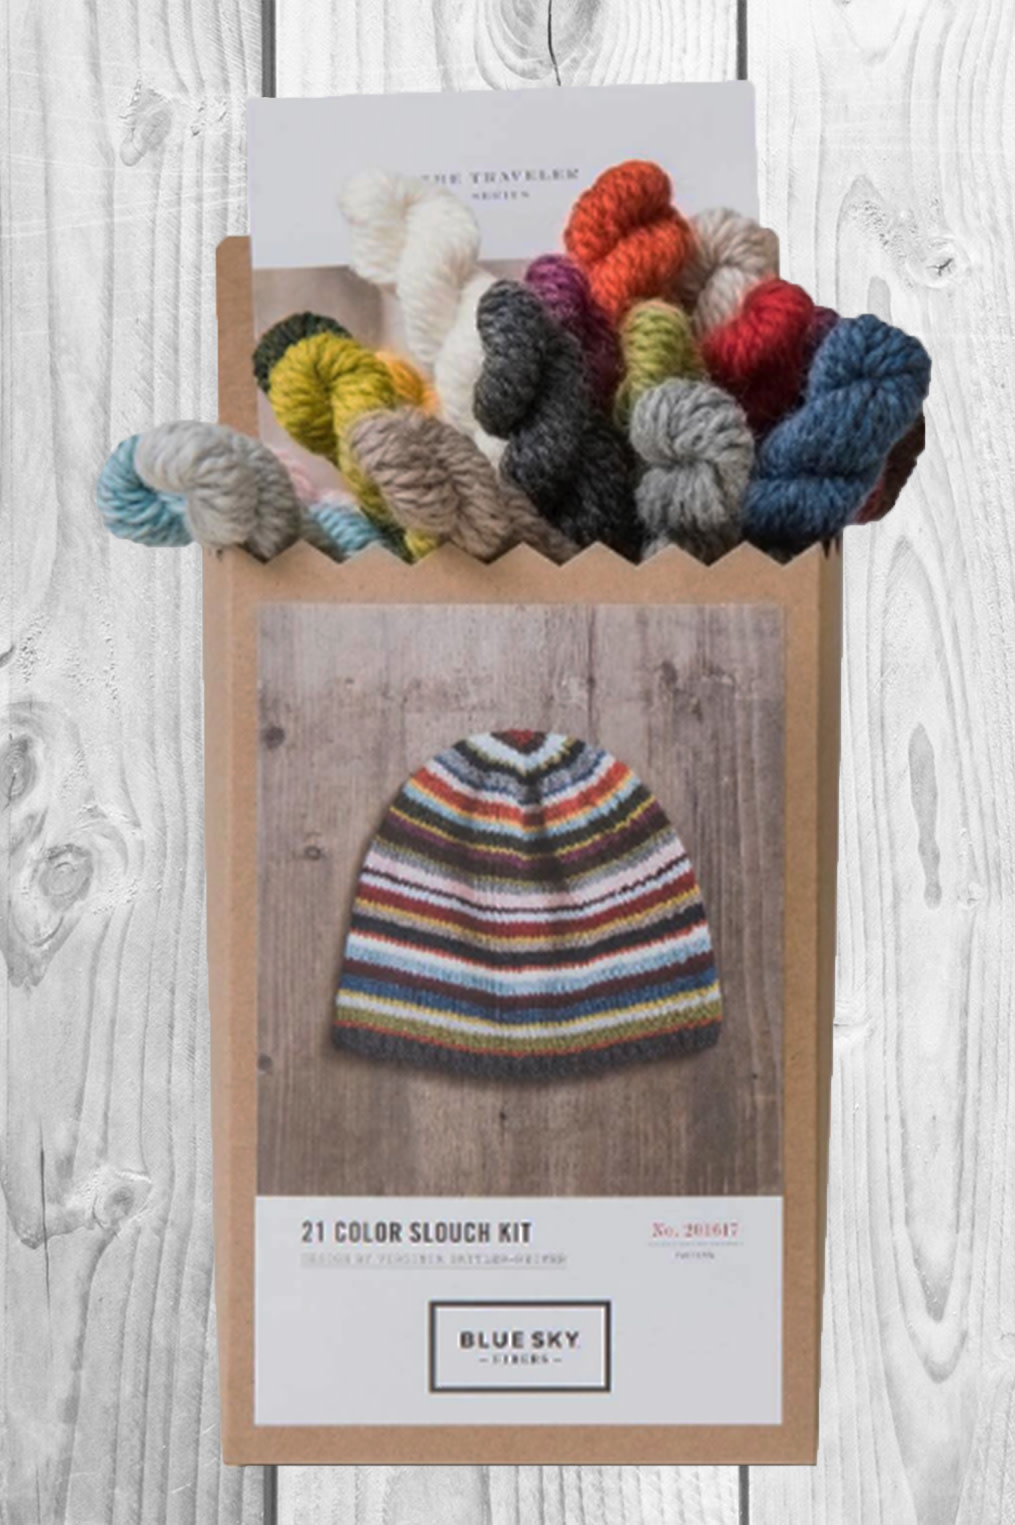 Image of Blue Sky Fibers 21 Color Slouch Hat Kit